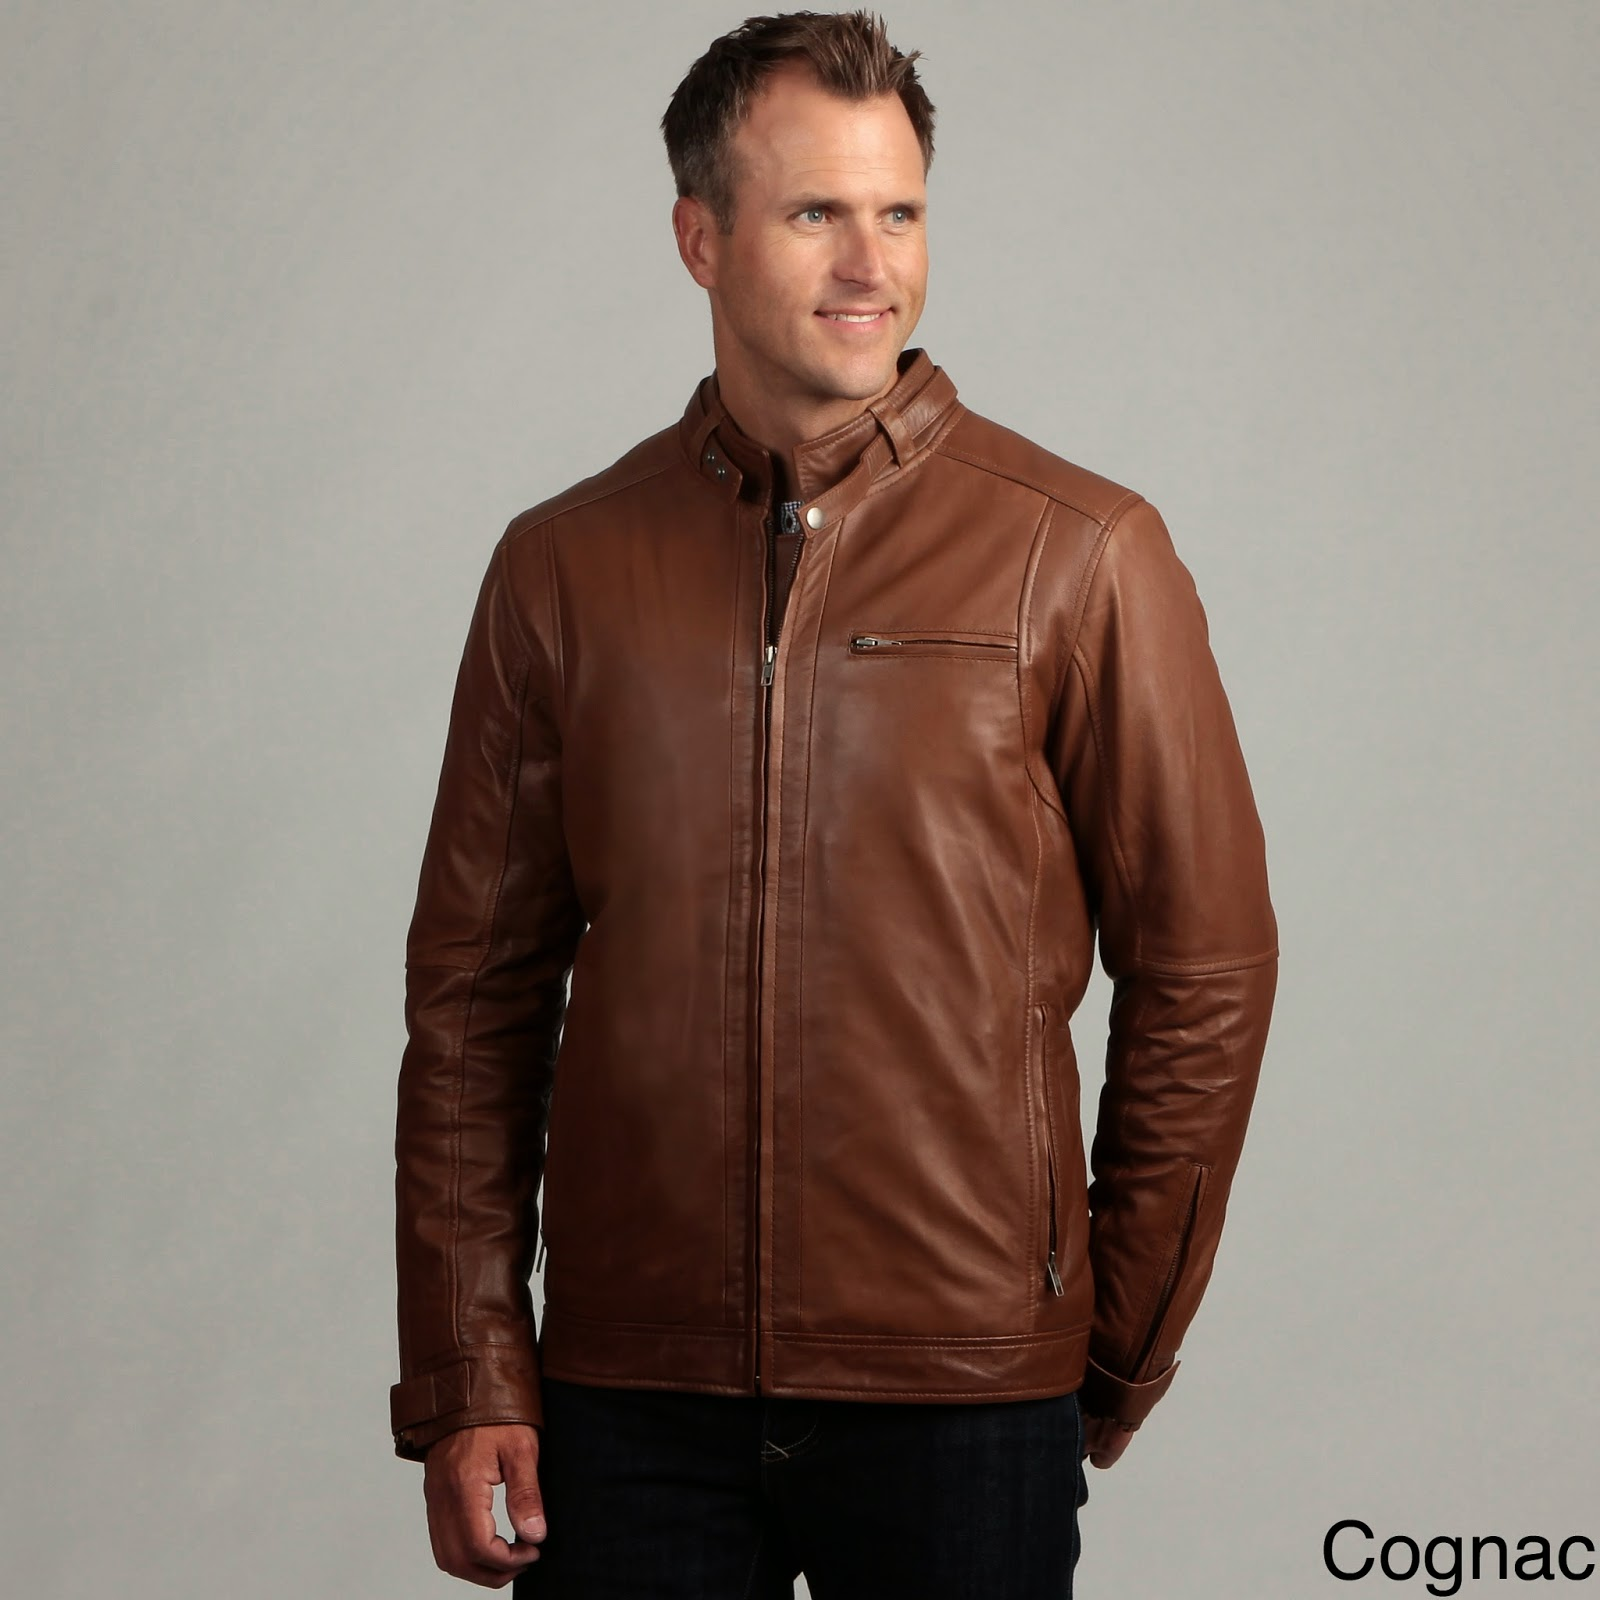 Overstock leather jackets